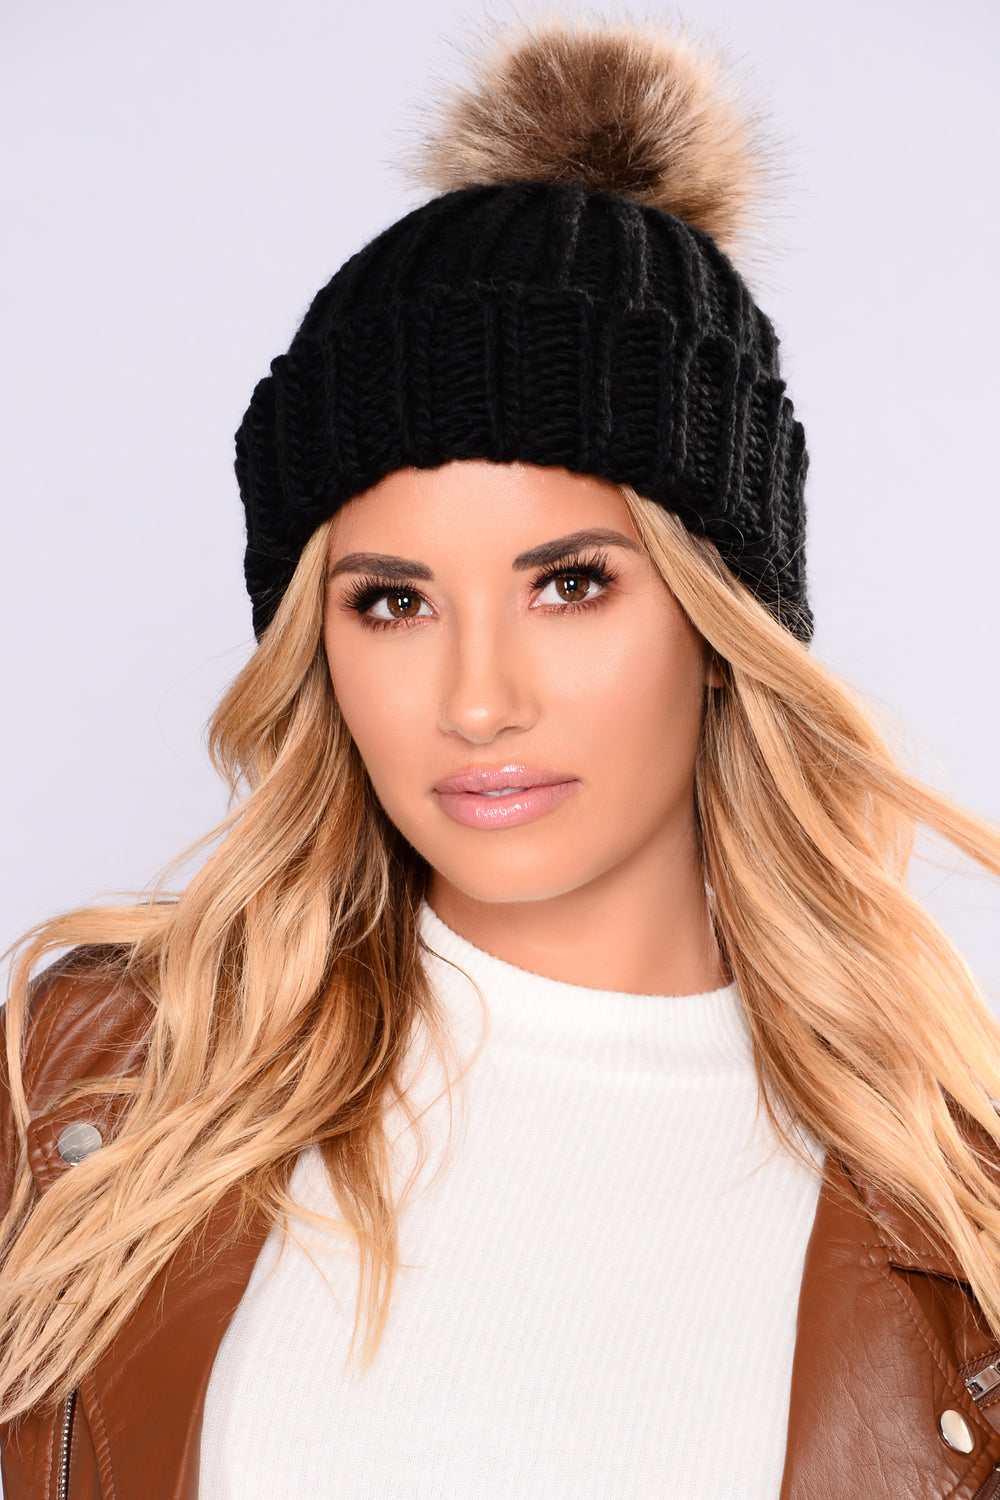 Fur So Chic Beanie - Black